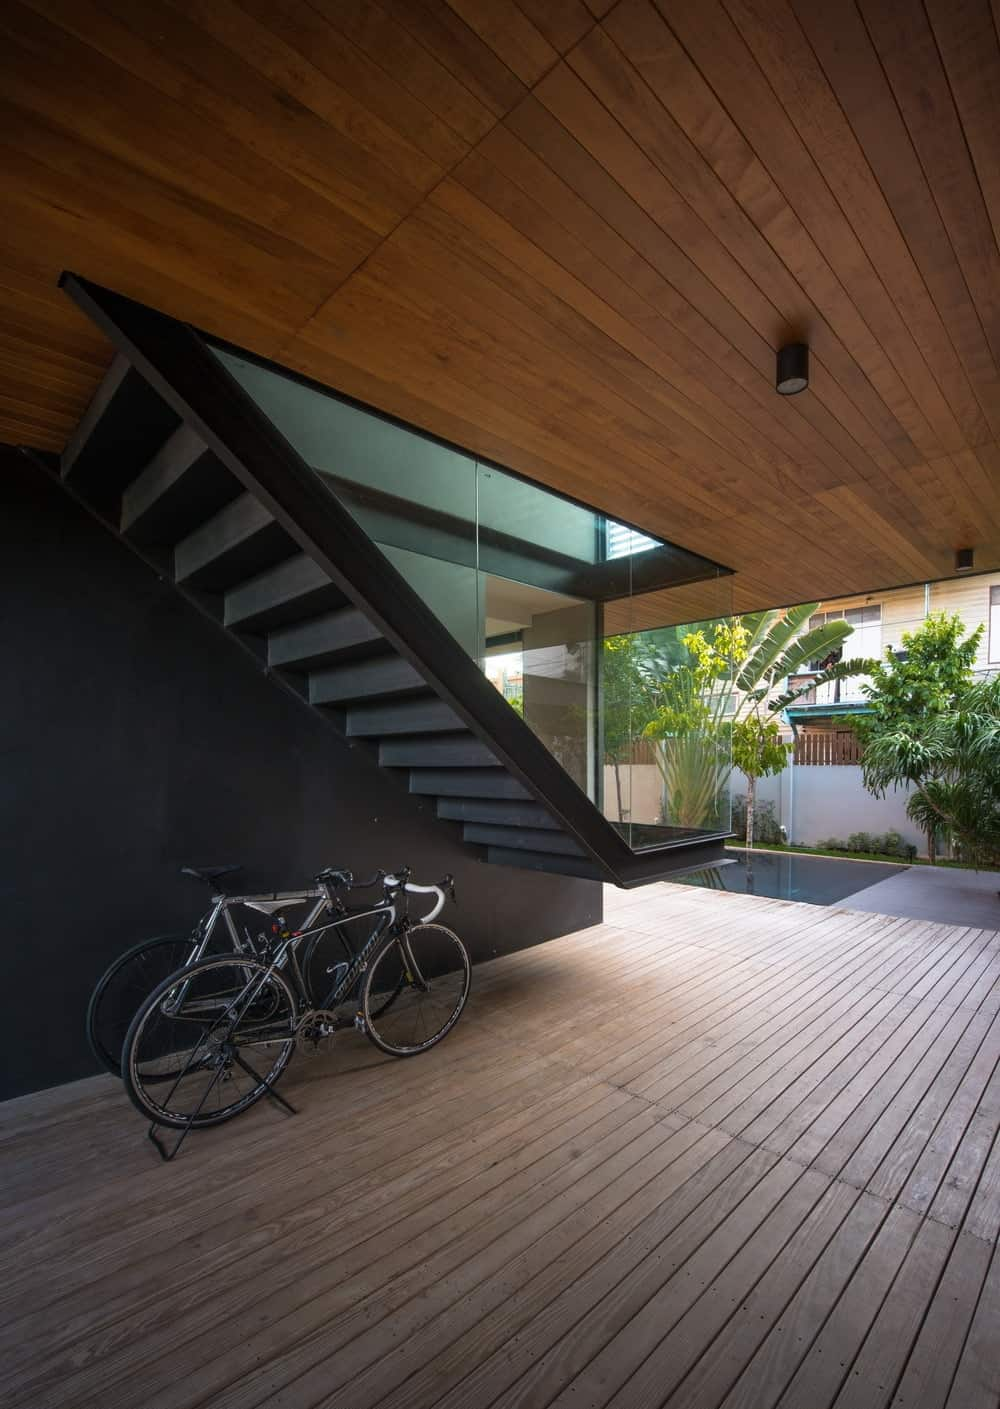 This area of the staircase and wooden flooring leads to the poolside area on the far side.